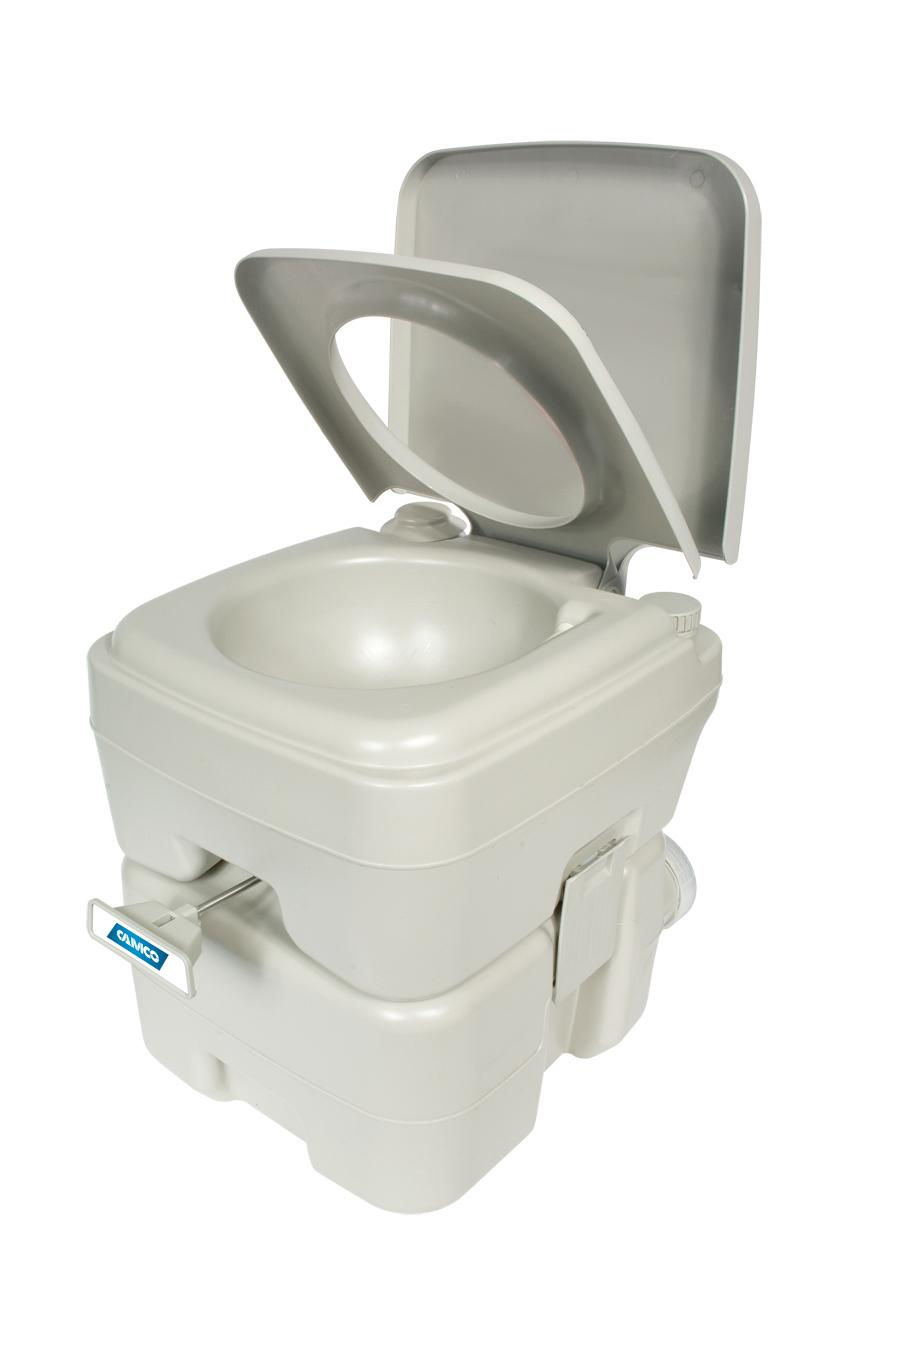 Amazon.com: Camco Standard Portable Travel Toilet, Designed for ...